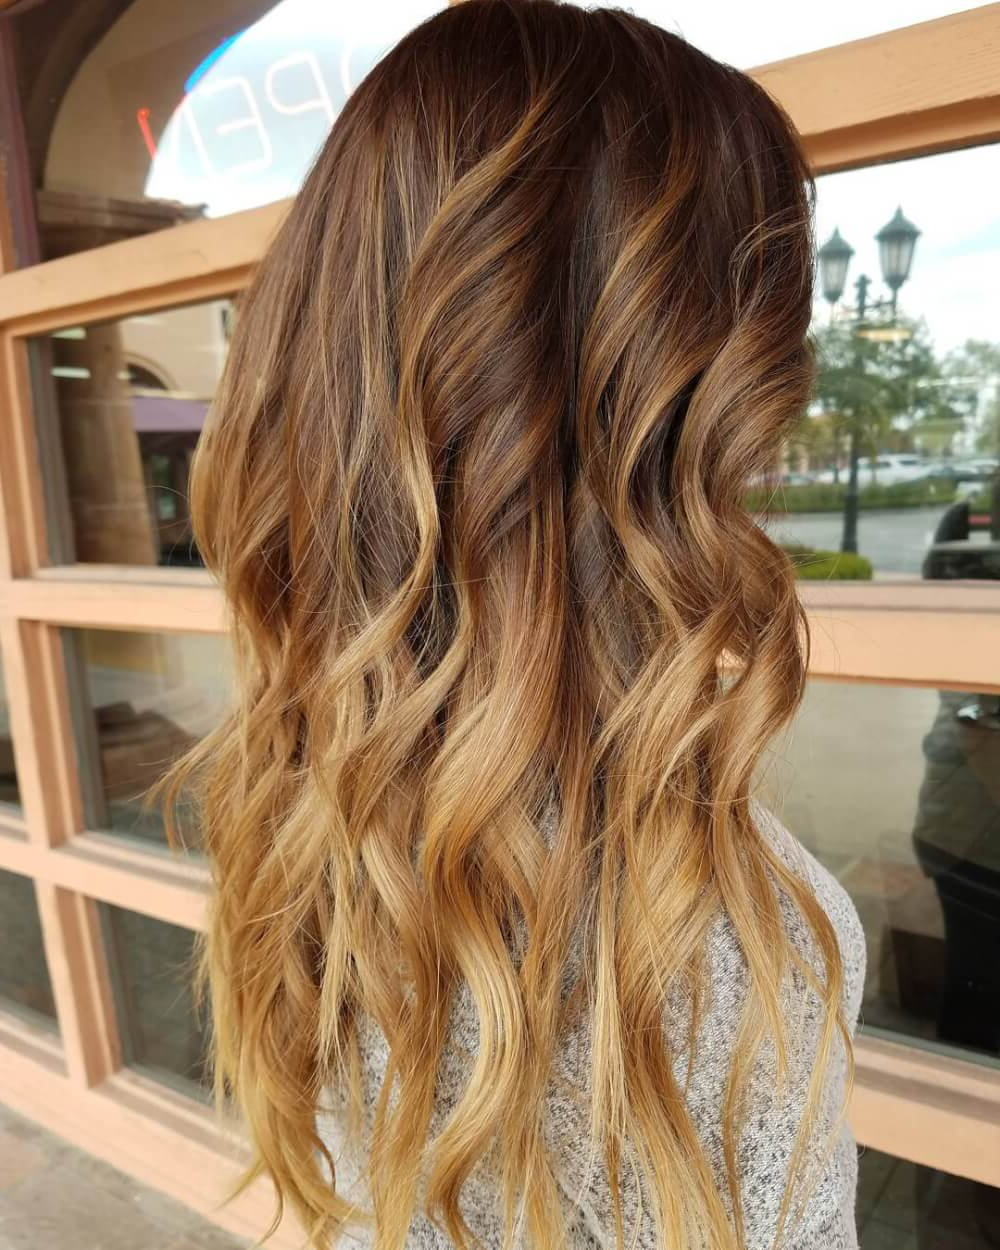 36 Light Brown Hair Colors That Are Blowing Up In 2019 Within 2019 Warm Toned Brown Hairstyles With Caramel Balayage (Gallery 7 of 20)